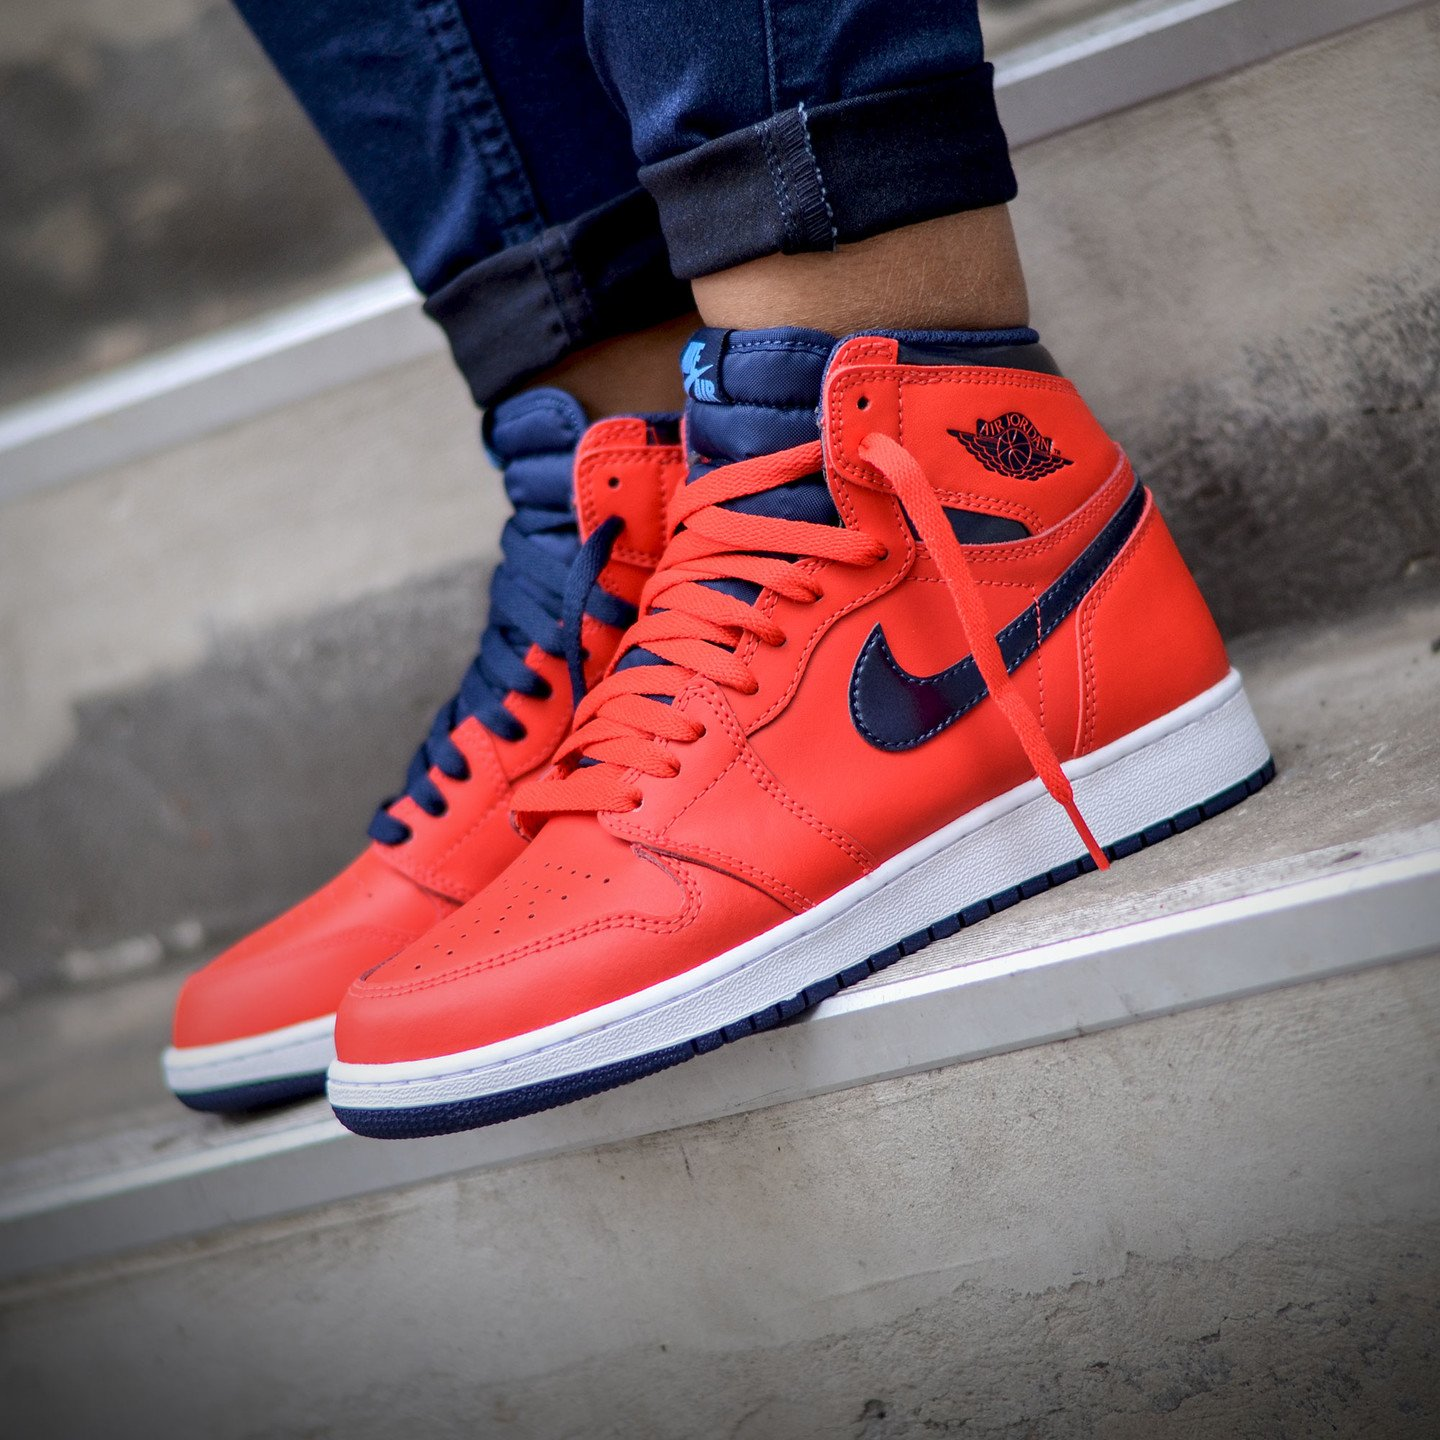 Nike Air Jordan 1 Retro High OG 'Letterman' Light Crimson / University Blue 555088-606-44.5